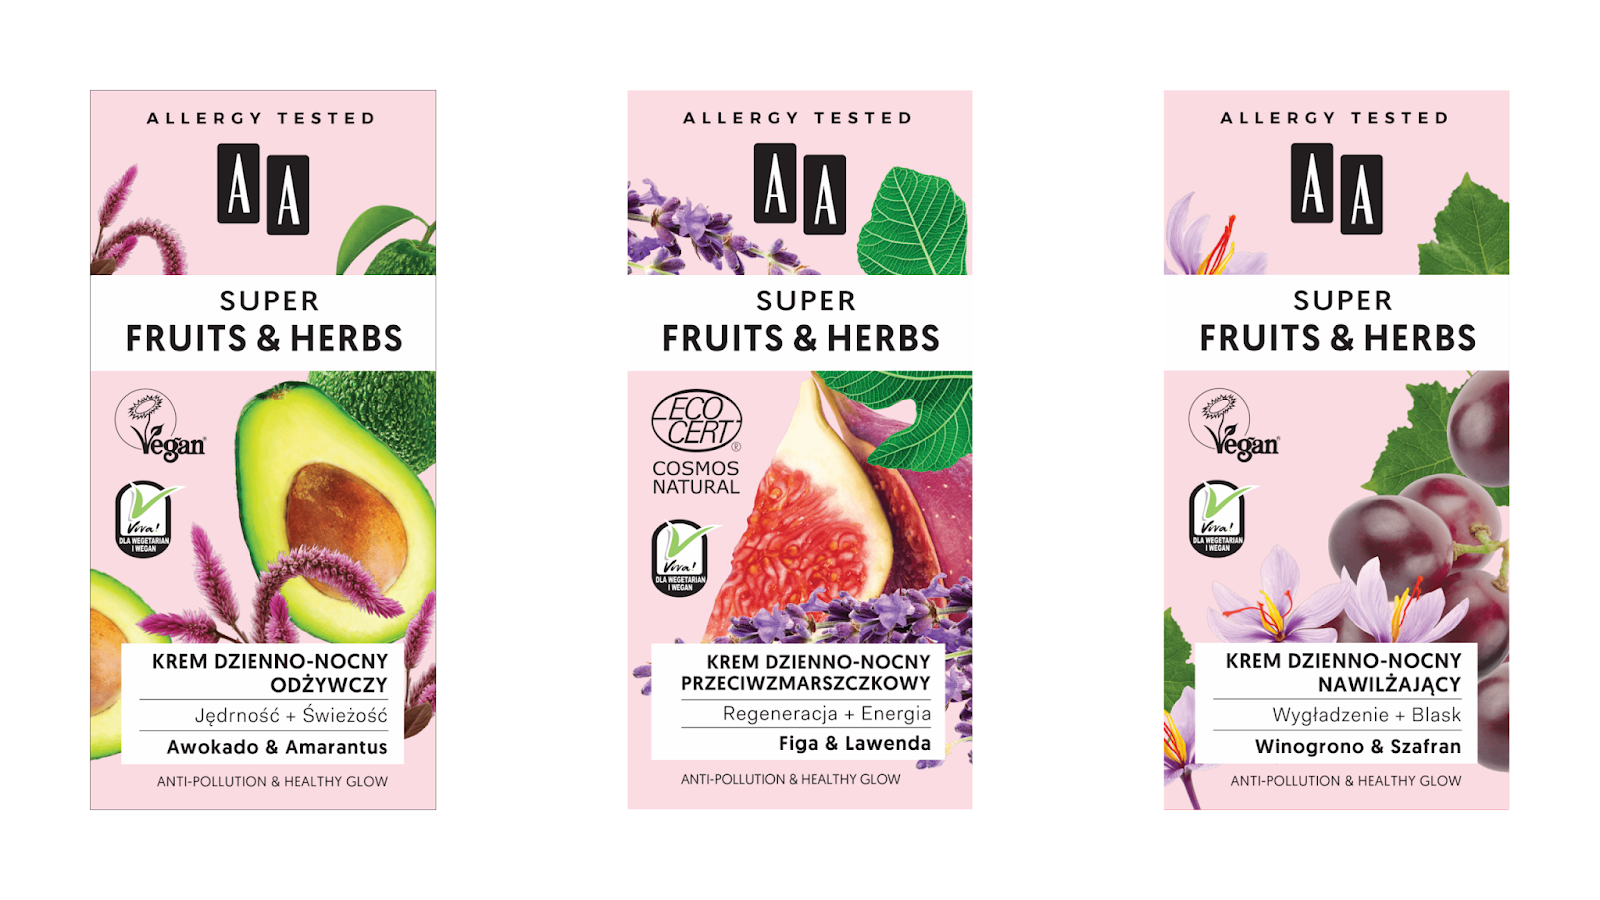 AA Super Fruits and Herbs